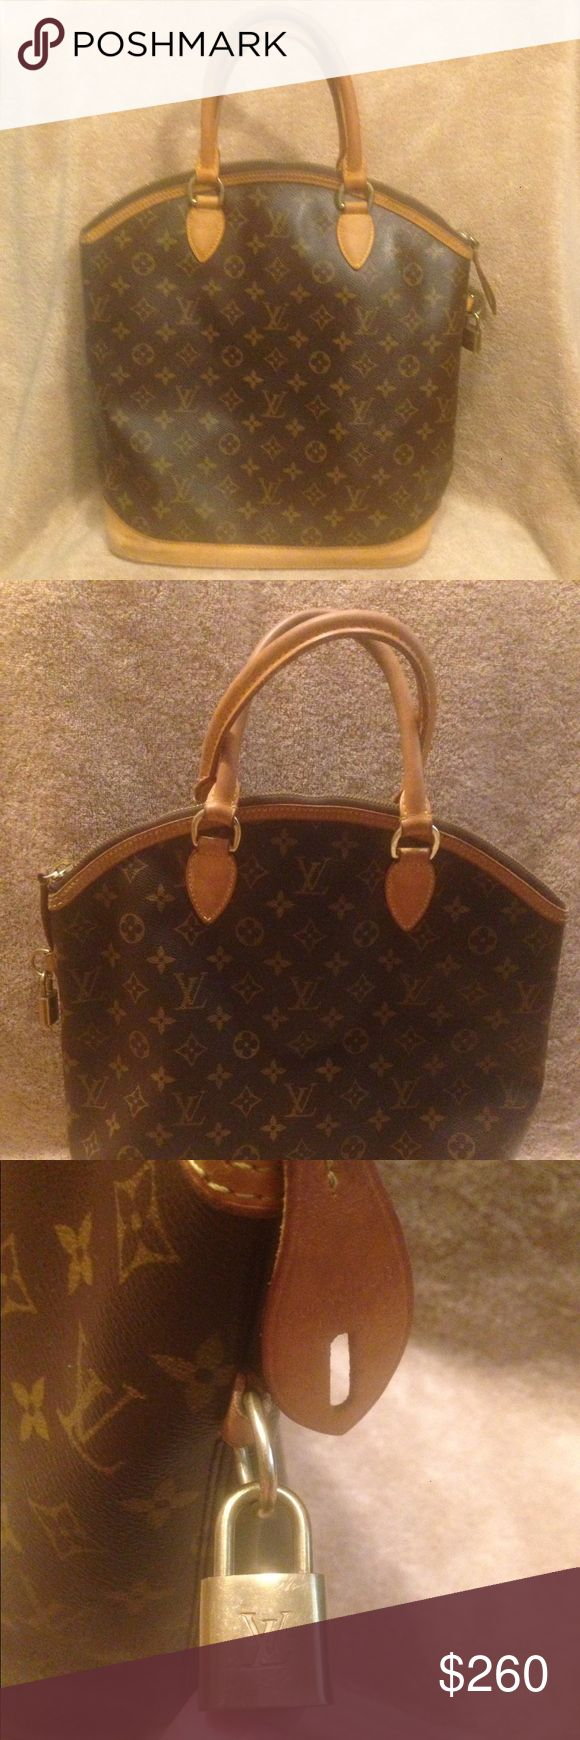 Louis Vuitton Monogram Lockit Vertical Tote 💯 Authentic Louis Vuitton Brown Monogram Canvas Lockit Vertical Tote Bag. Trimmed with leather and features two rolled top handles and zip closure. Date code: SD0076. Handle Length: 14, Handle Drop: 4.625, Height 13.75, Length: 11.15, Width: 6.375. Interior features: Flat pocket and cell phone pocket. The only mark goes nearly unnoticed, but is shown in the last picture. Gently used but I plan to sell fast so the price is jaw dropping😱 I luv it…